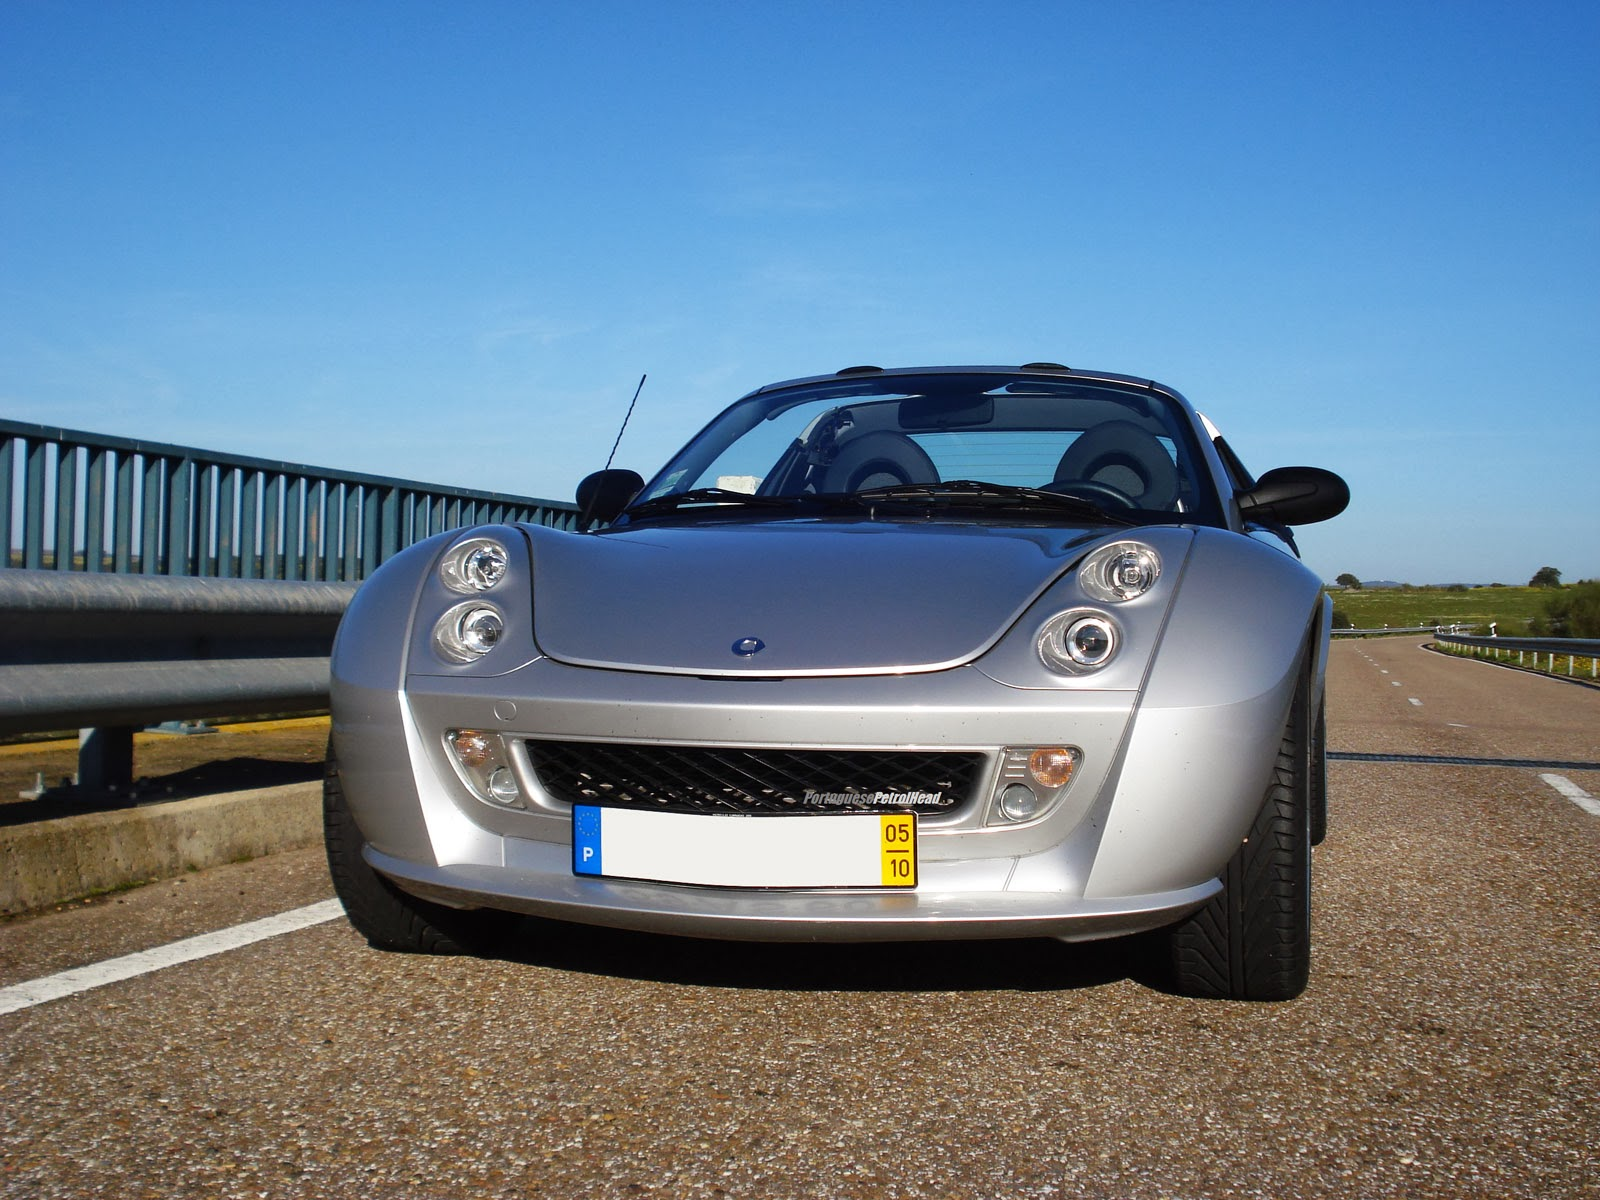 Smart Roadster Brabus Review Portuguese Petrol Head Driven Smart Roadster Brabus Xclusive